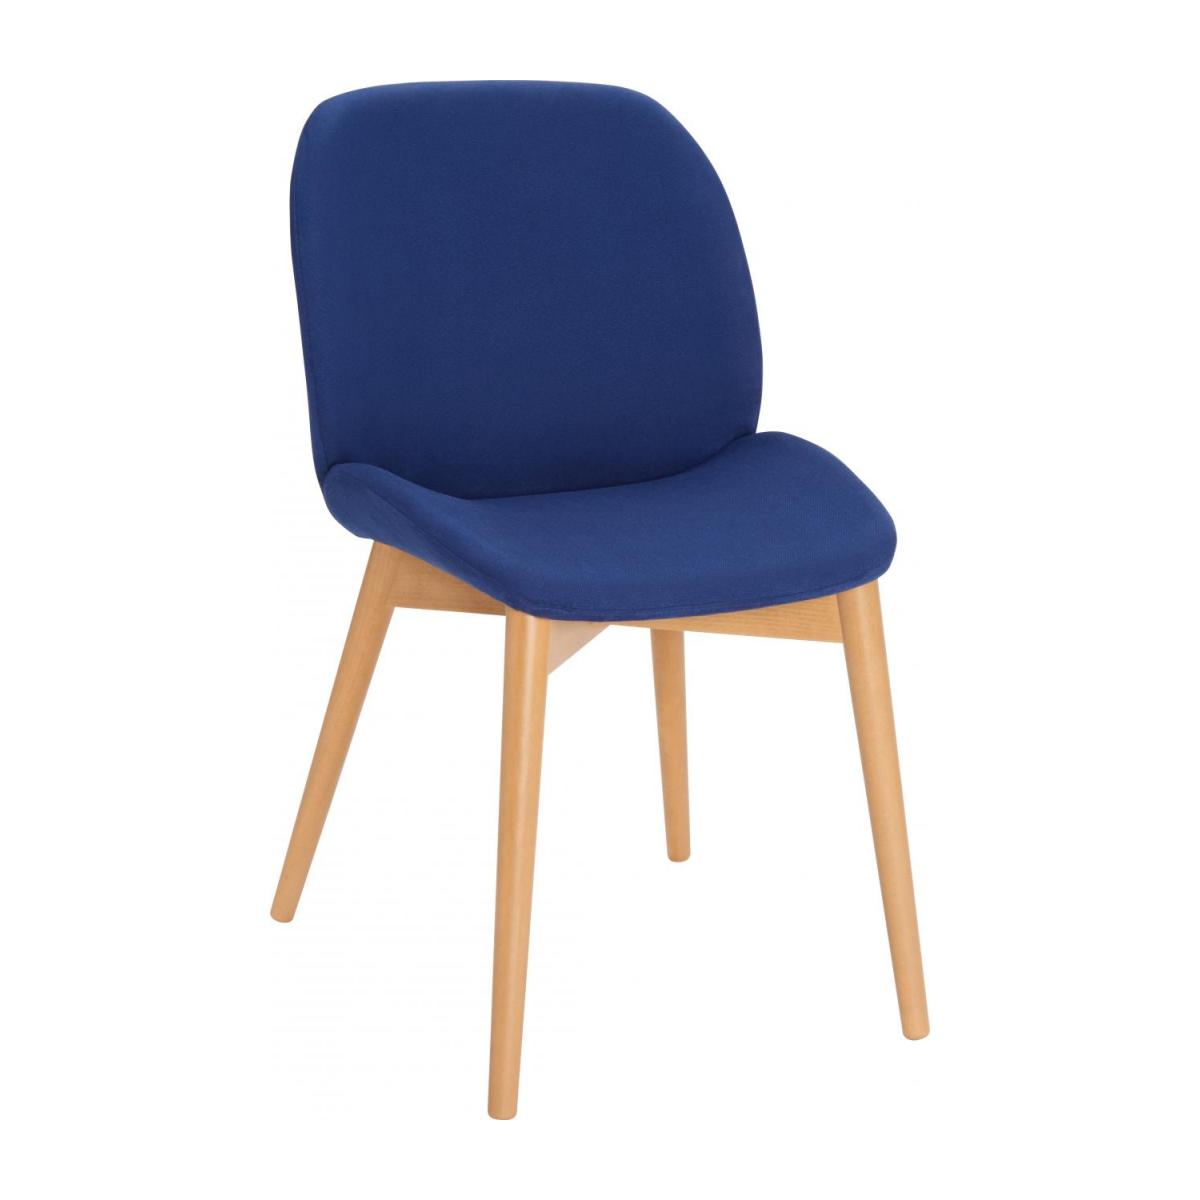 Chair with blue fabric cover and beech wood legs n°1